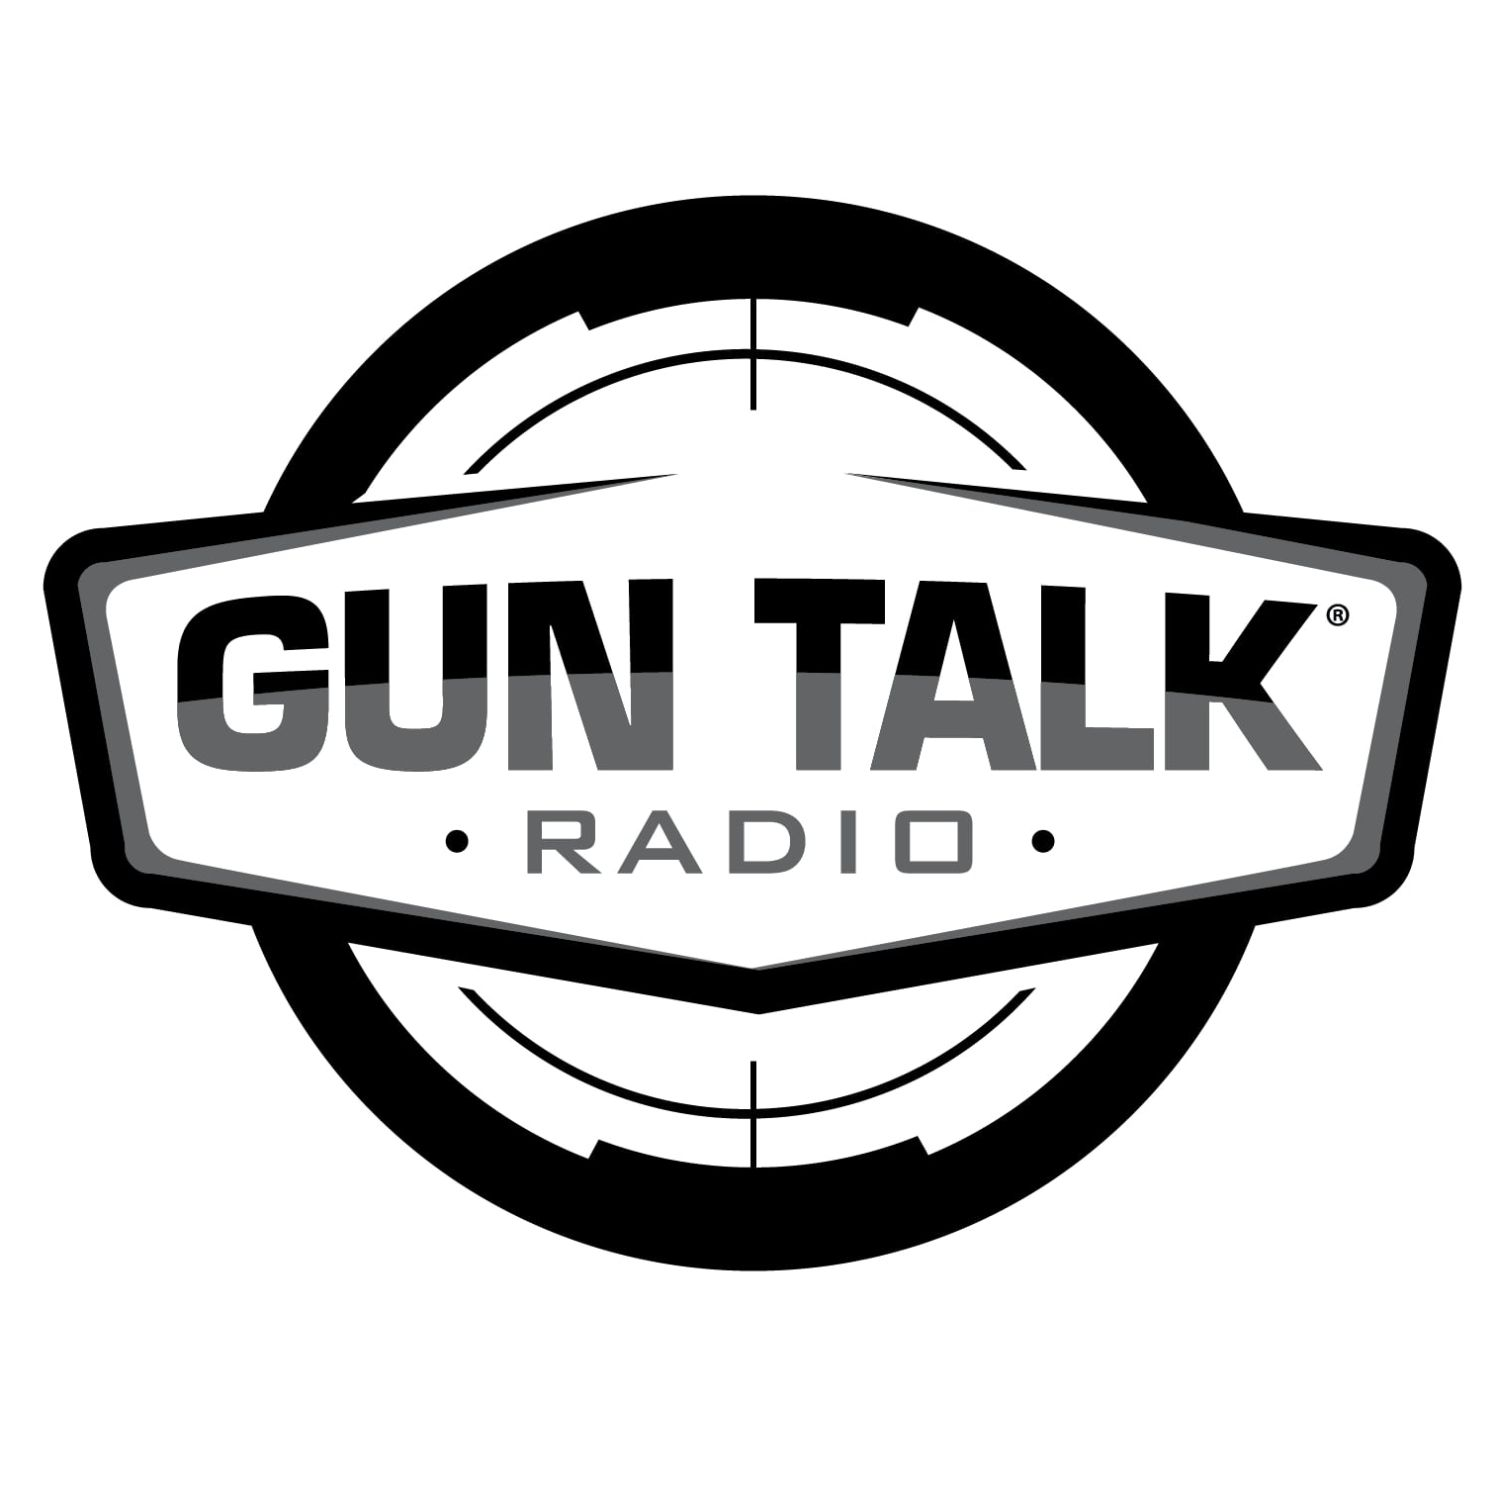 Artwork for Guntalk 2010-01-31 Part B